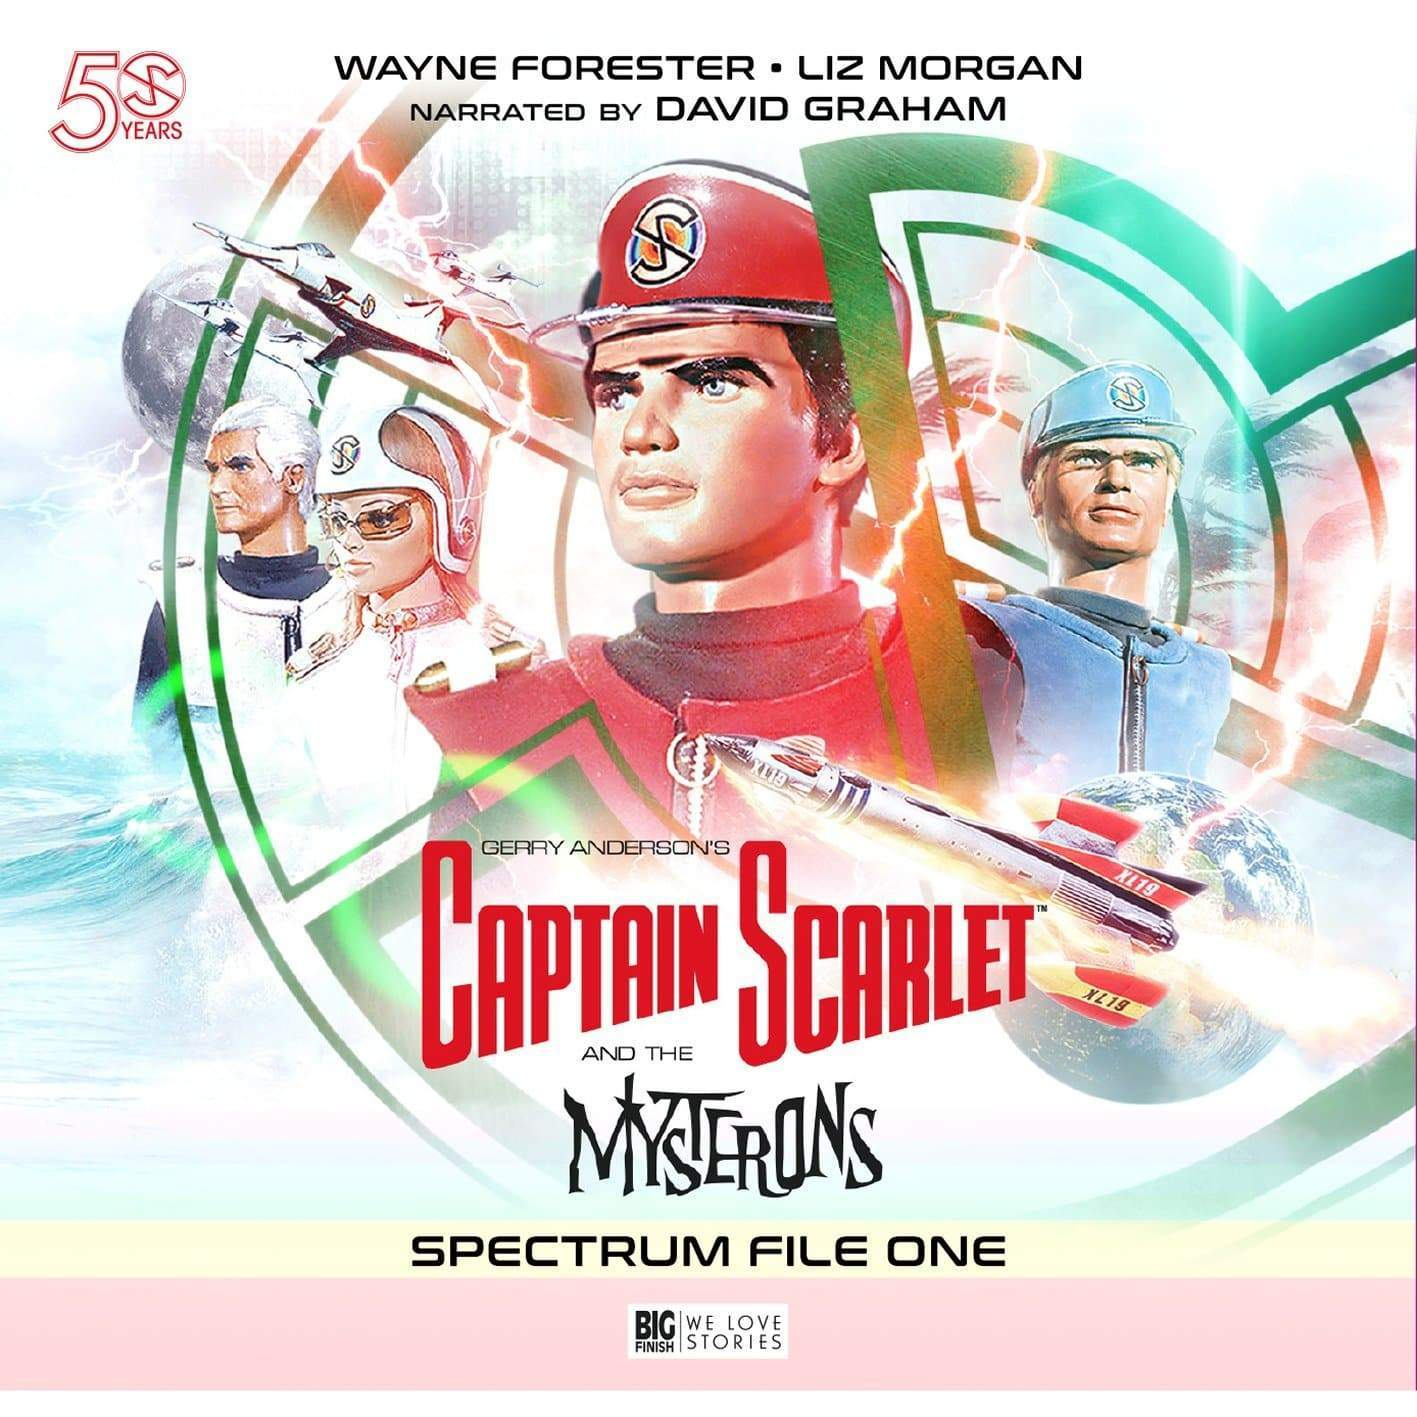 Captain Scarlet - Spectrum File 1 [DOWNLOAD] - The Gerry Anderson Store